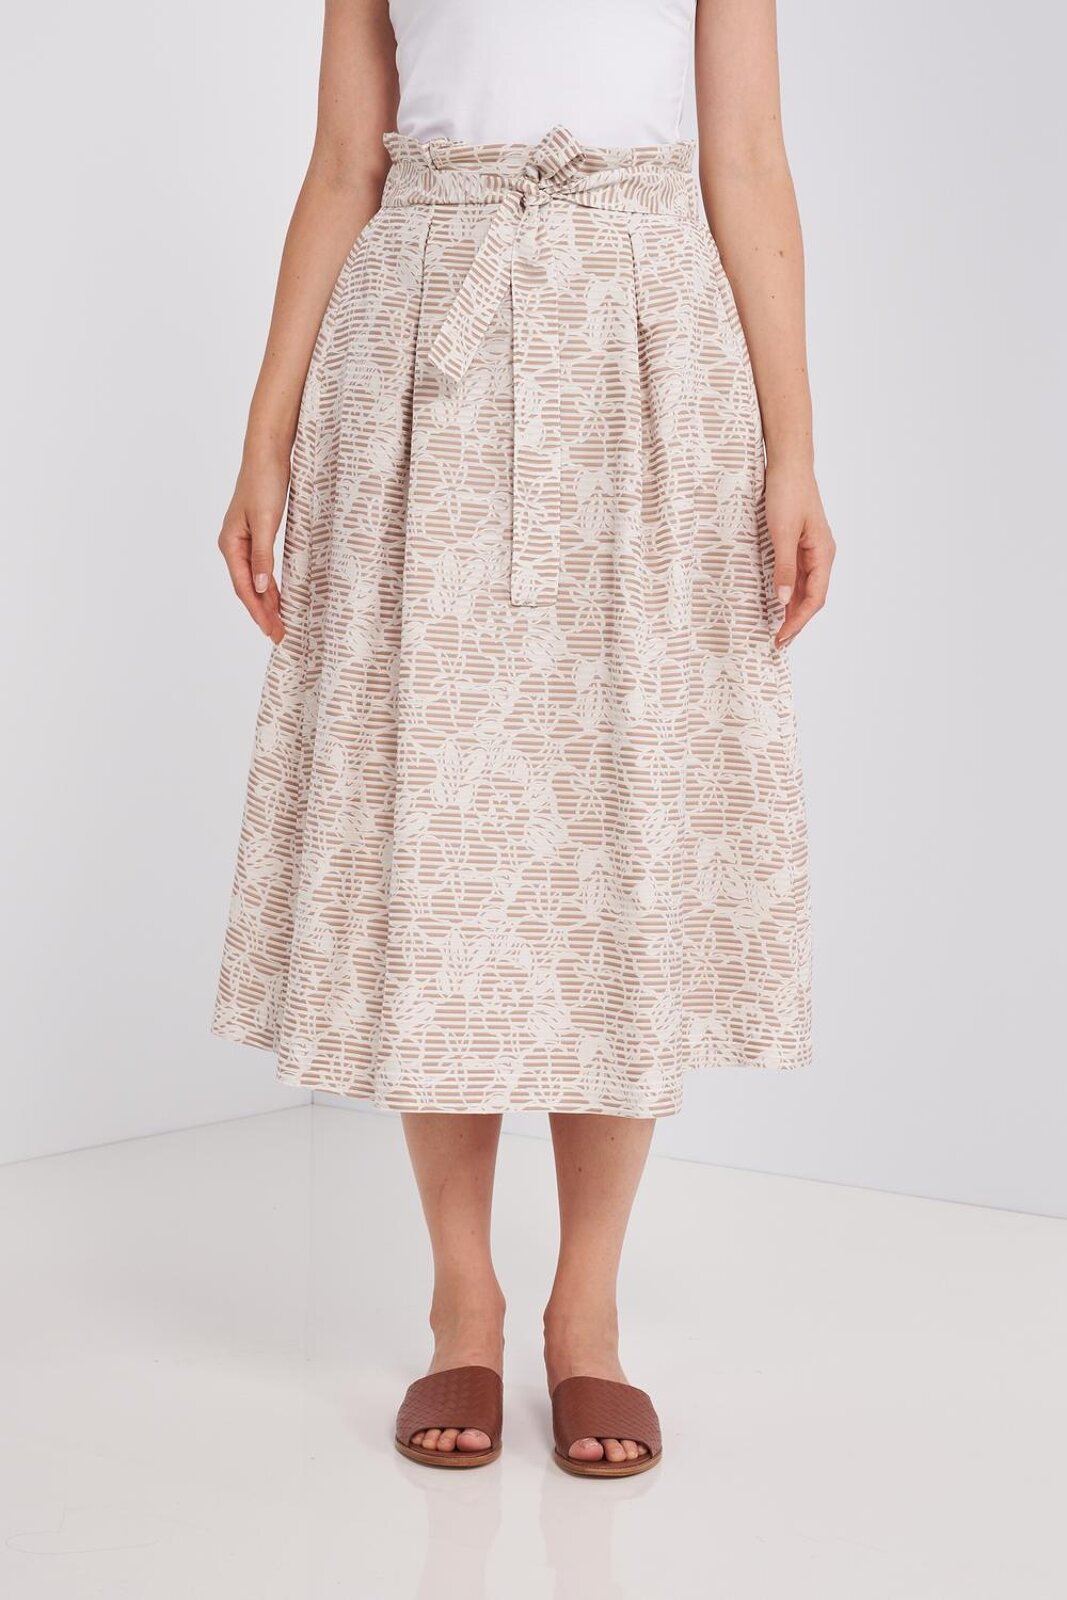 Midi skirt in soft cotton and silk with floral pattern. Working With Transparent Stripes, Elastic Waist With Fabric Belt With Bow. Side pockets, wide fit. - Peserico